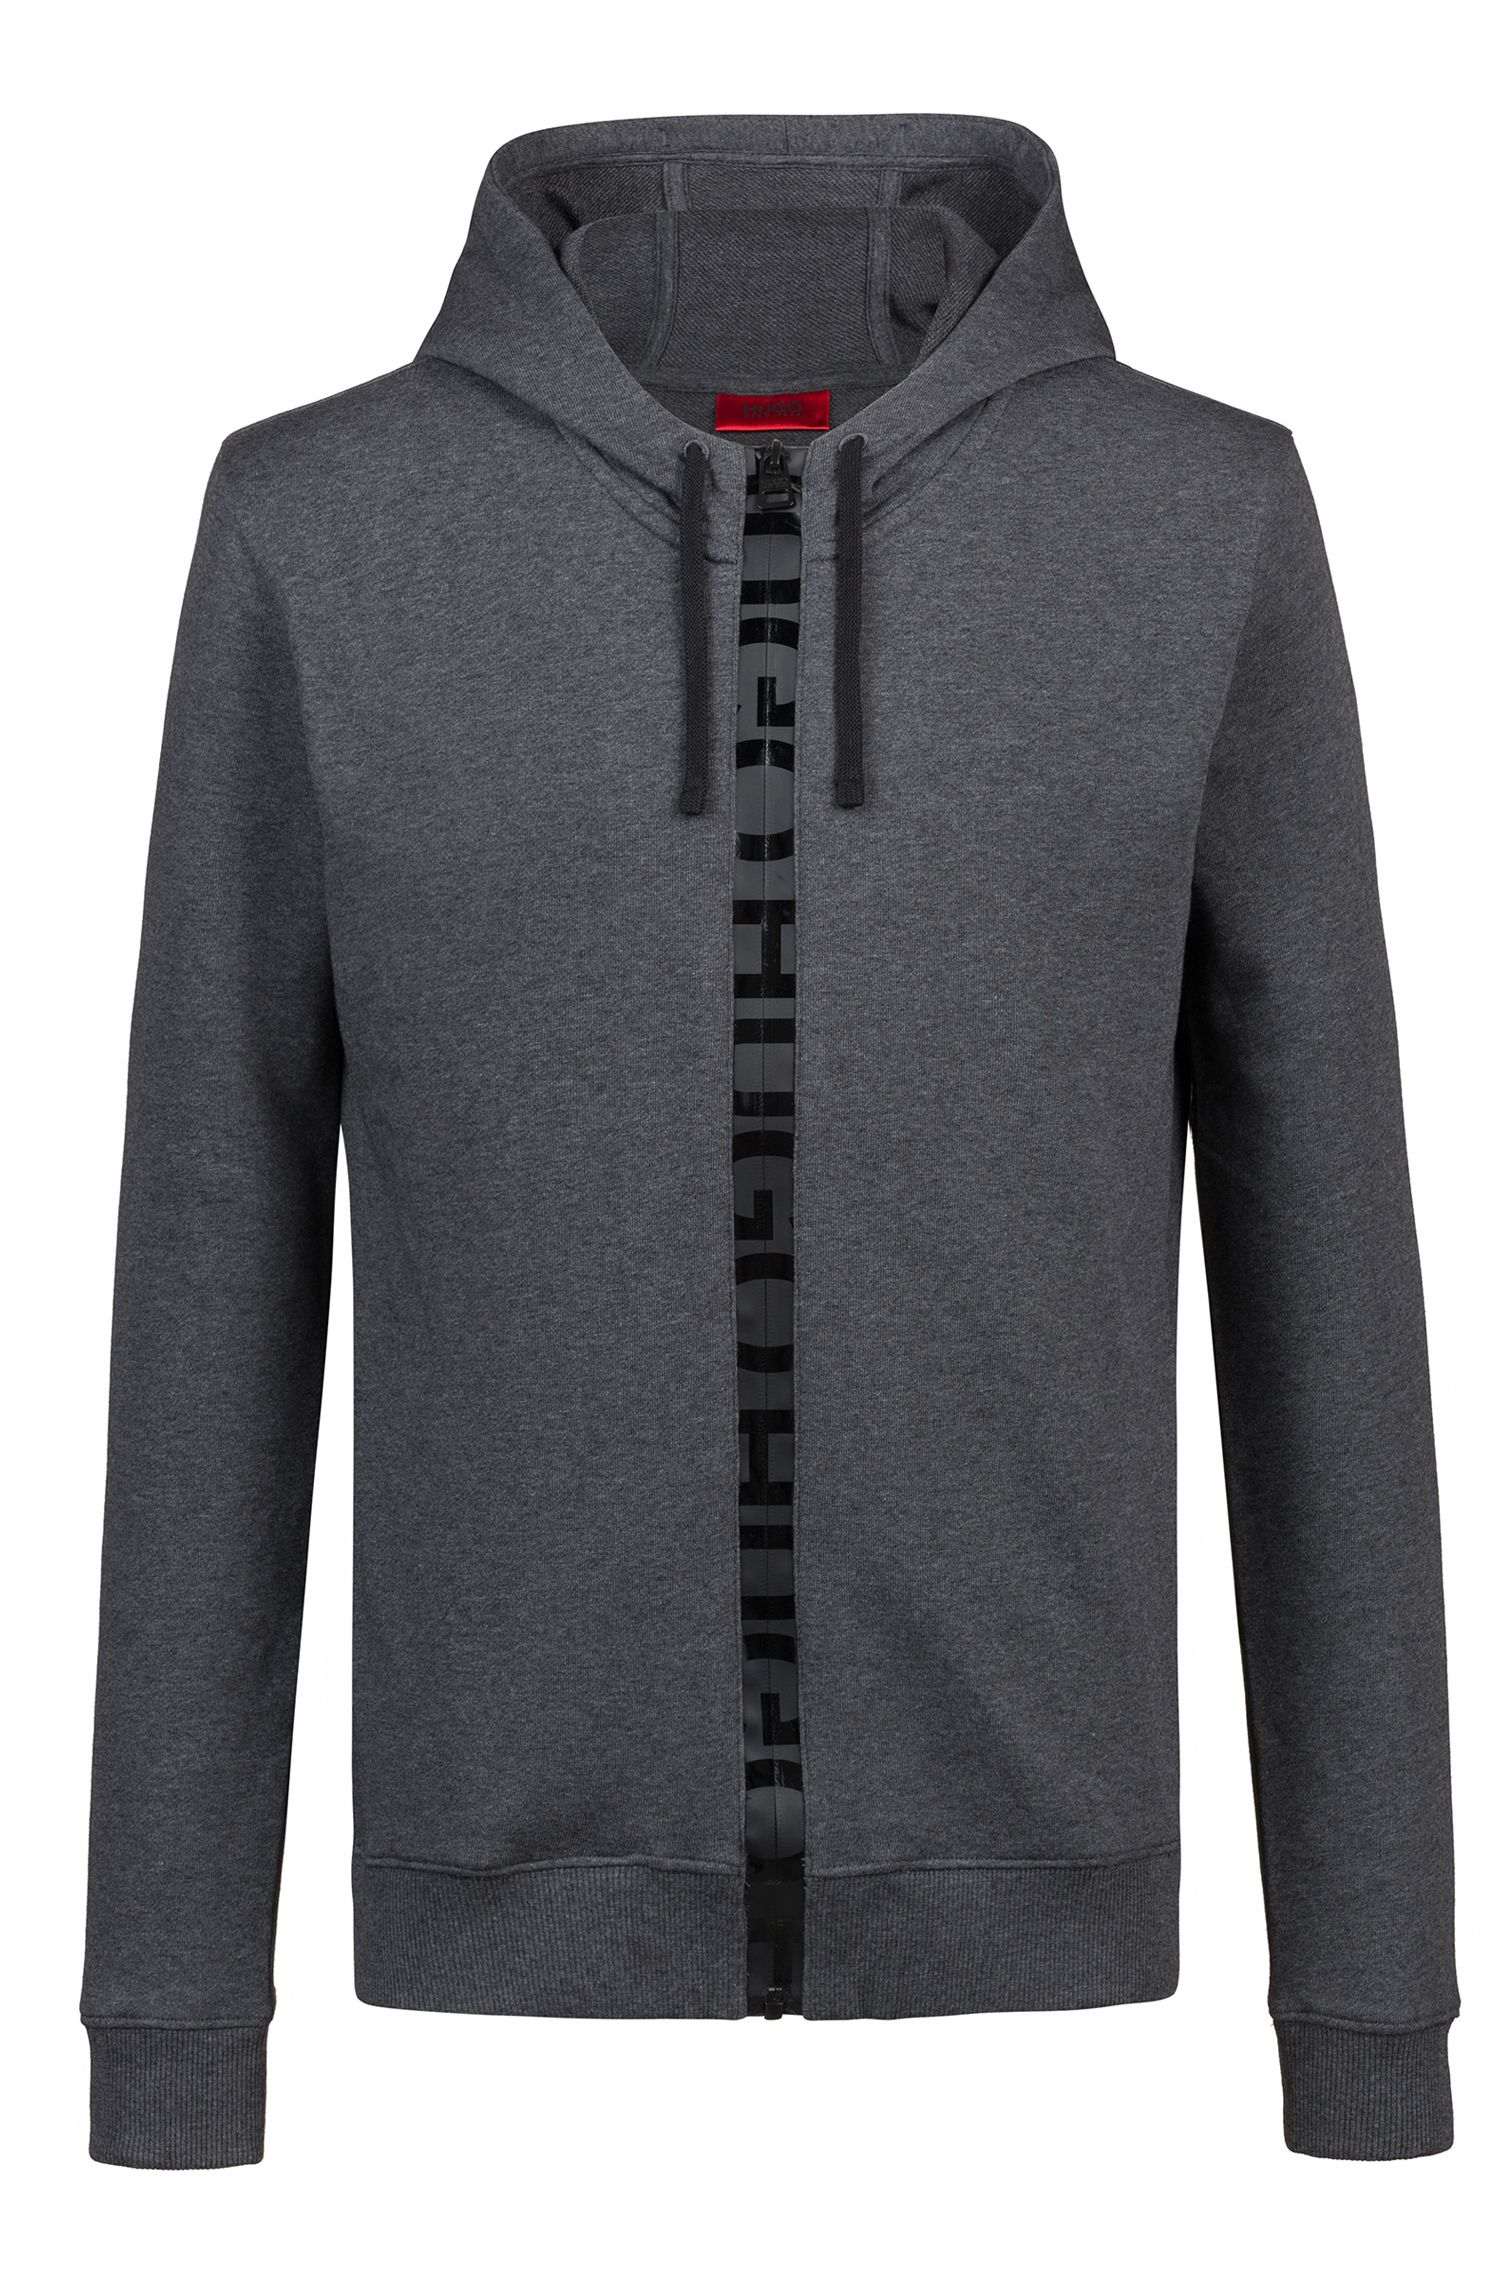 French-terry hooded sweatshirt with logo-tape zip, Grey